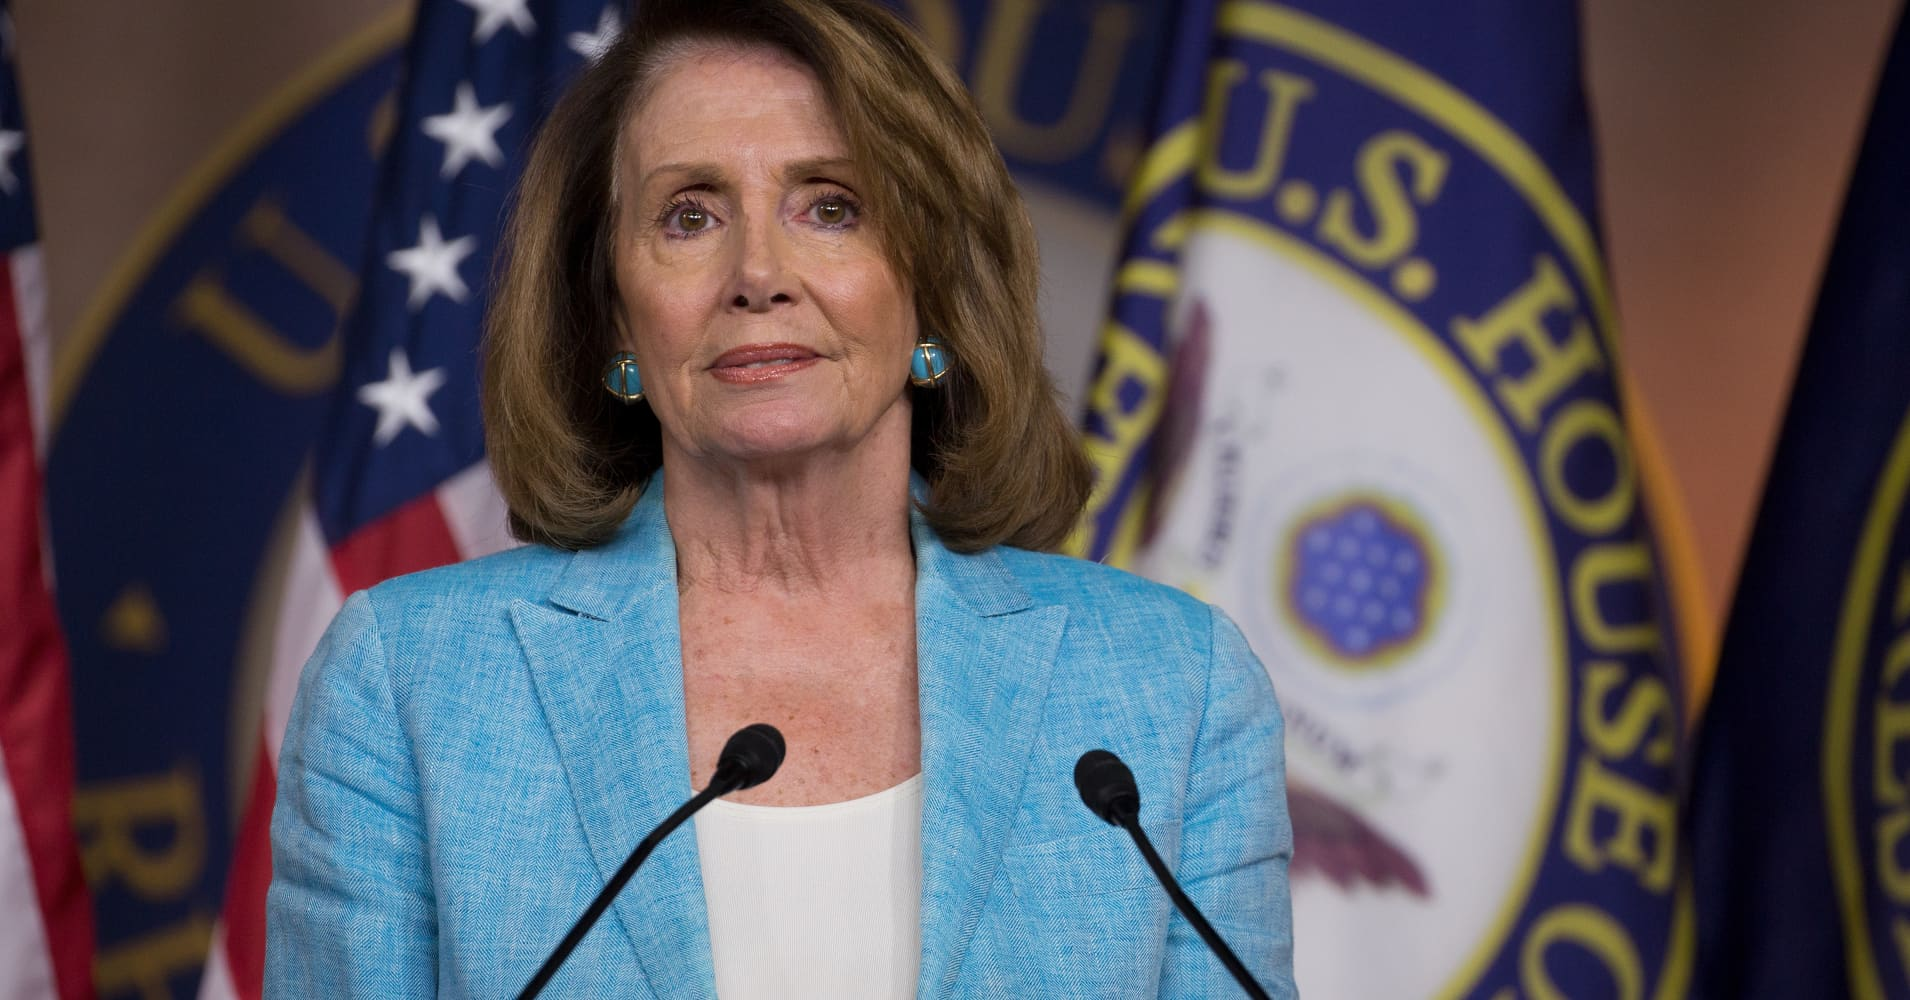 OpEd: Here's the real problem with Nancy Pelosi's 'antiquated political style'